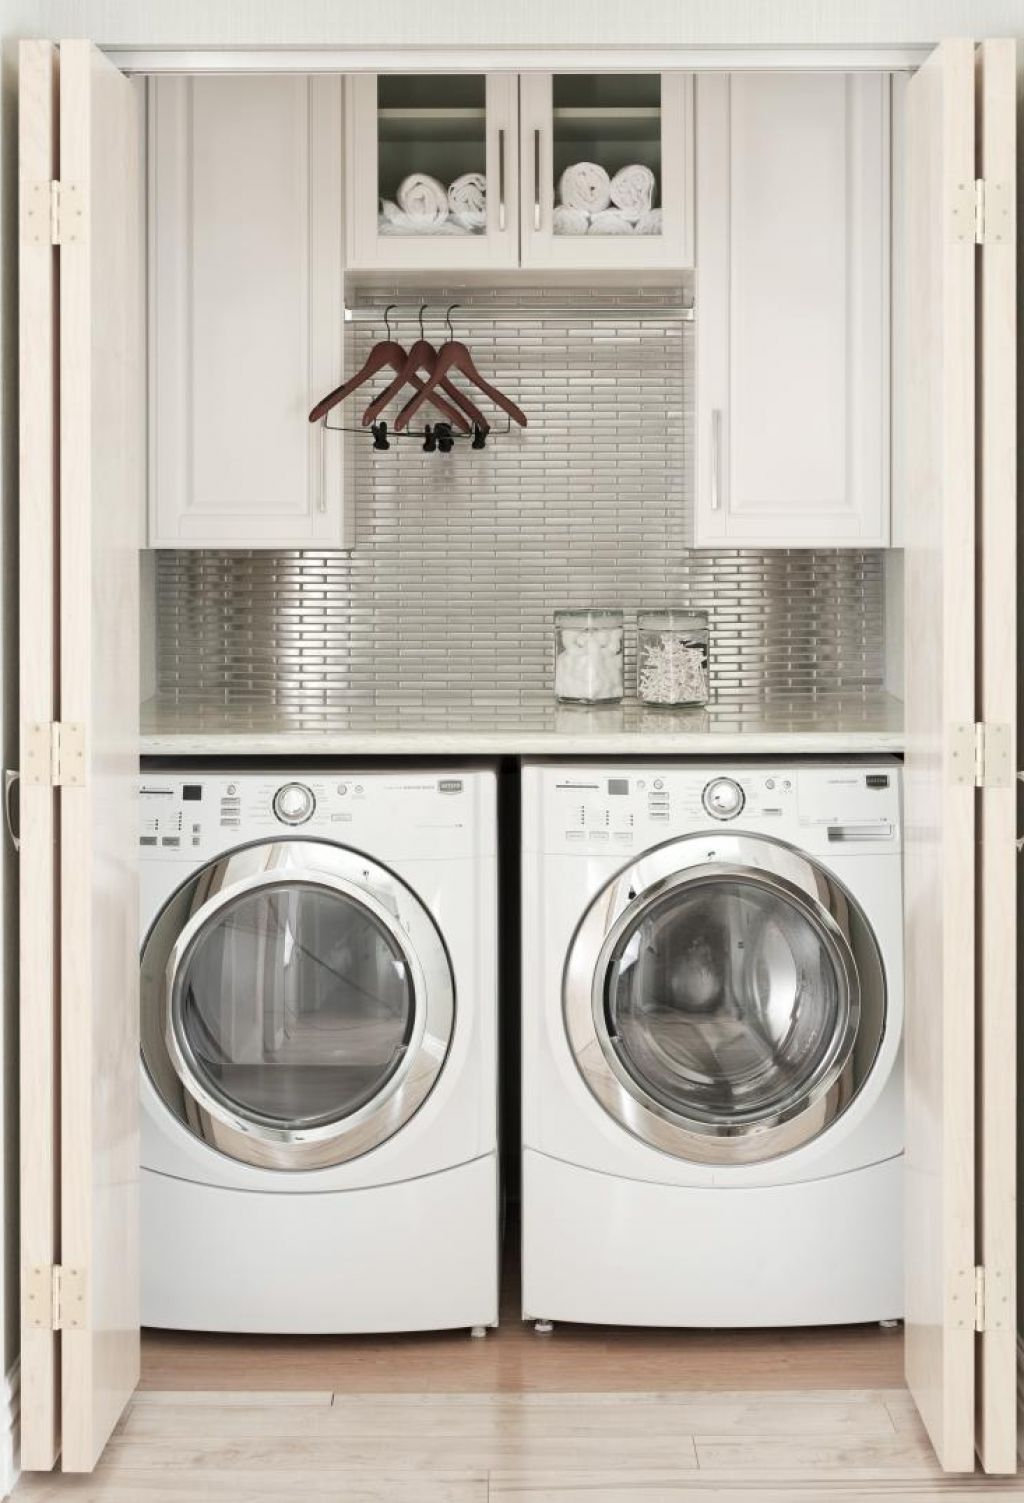 superb Kitchen Laundry Combo Designs #4: Kitchen With Laundry Room Laundry Room Design Combined With - Kitchen  laundry combo designs